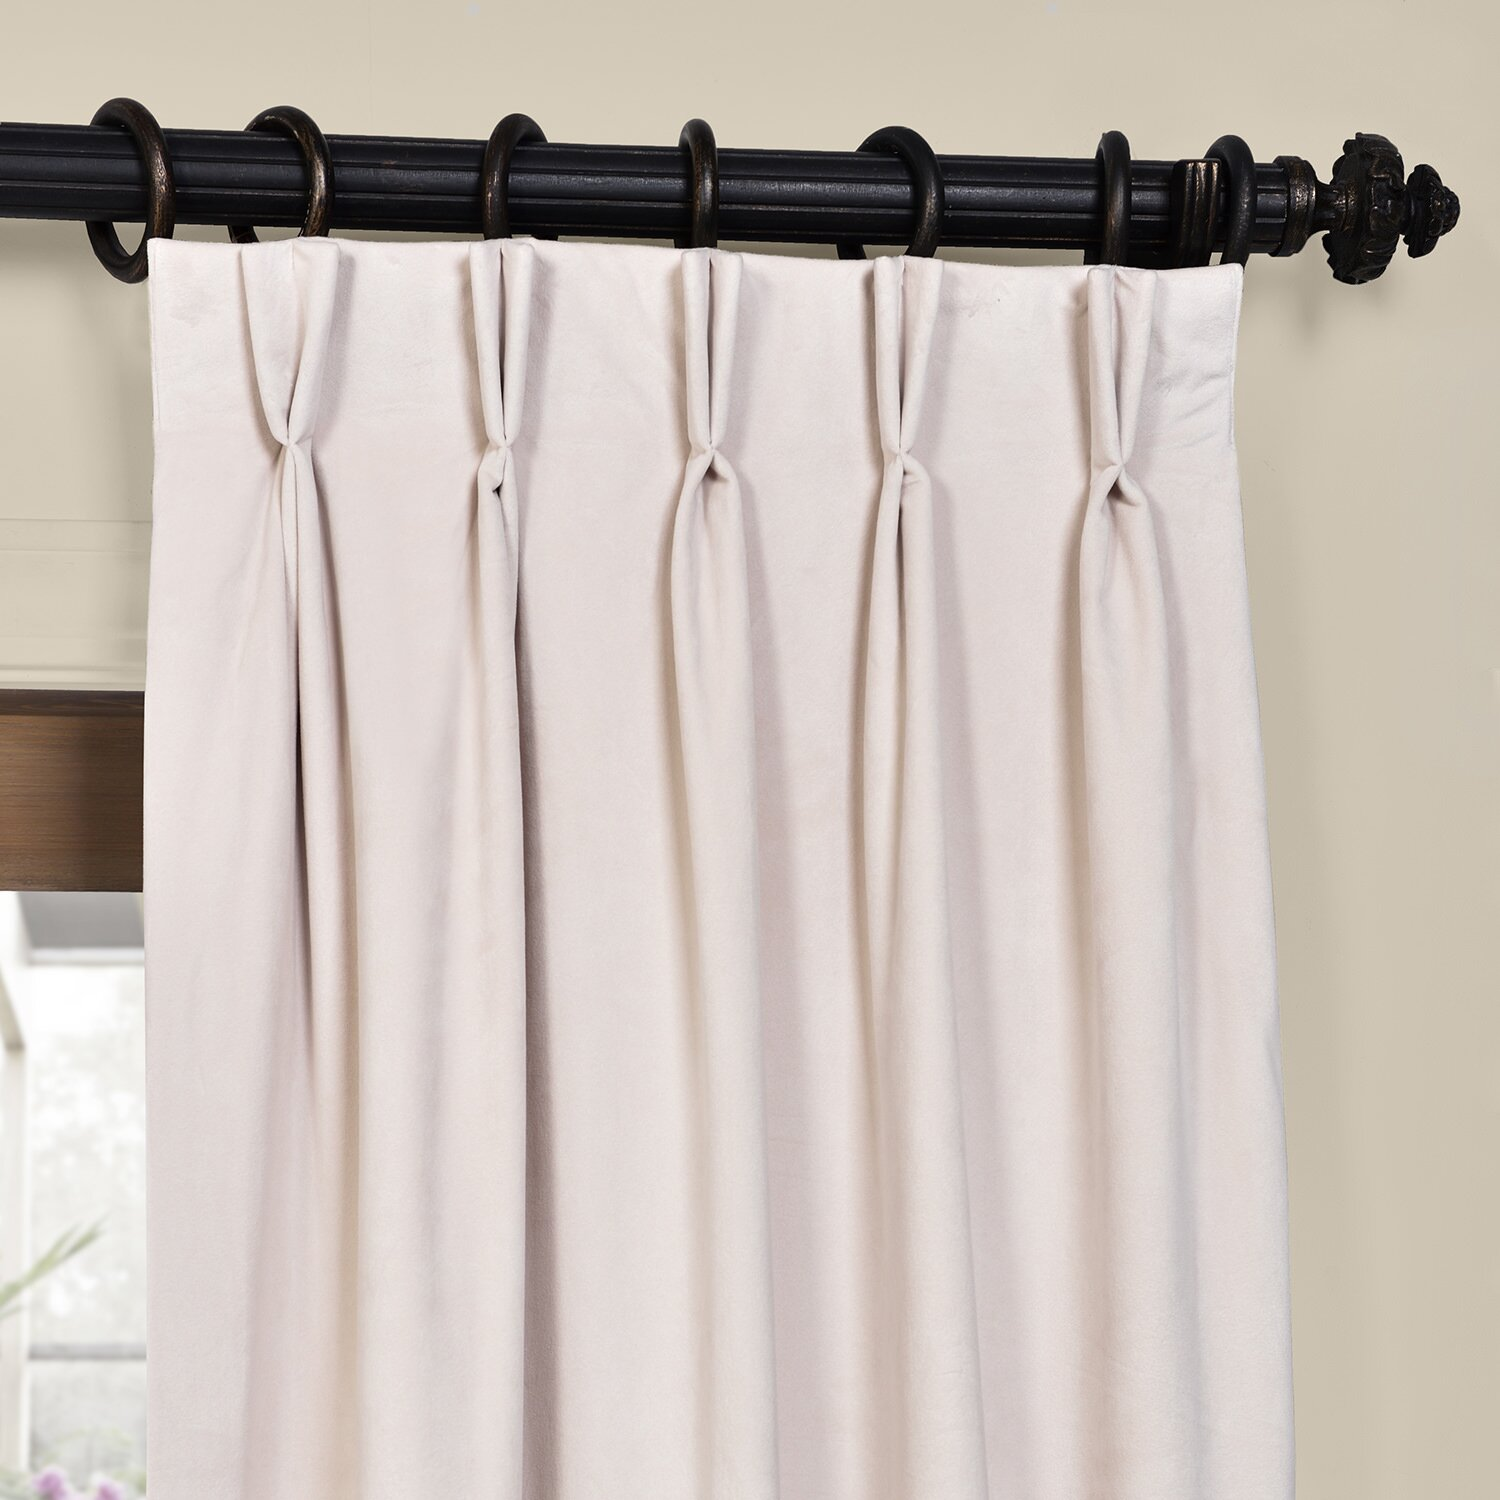 Balone Solid Blackout Thermal Pinch Pleat Single Curtain Panel Reviews Joss Main